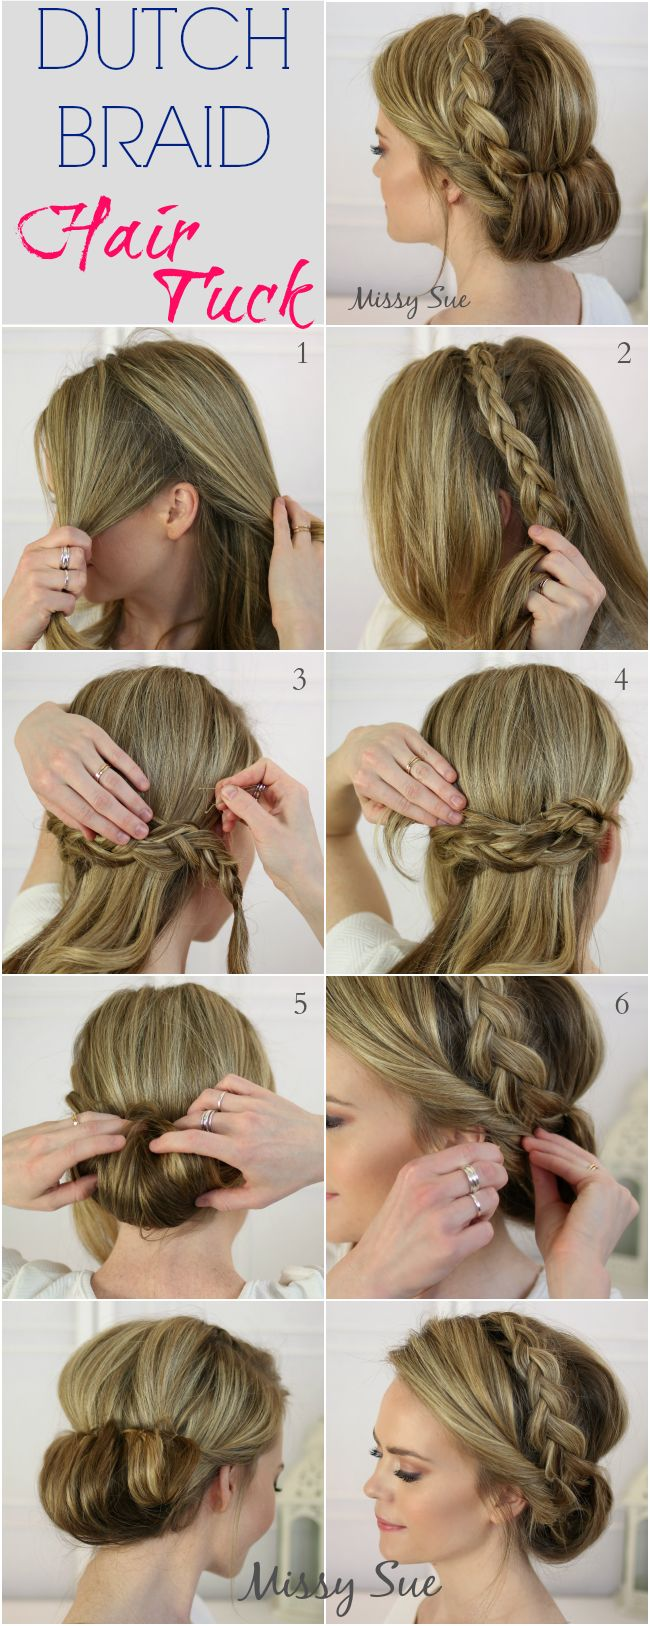 Miraculous 1000 Images About Braided Hairstyles On Pinterest Updo Crown Short Hairstyles Gunalazisus